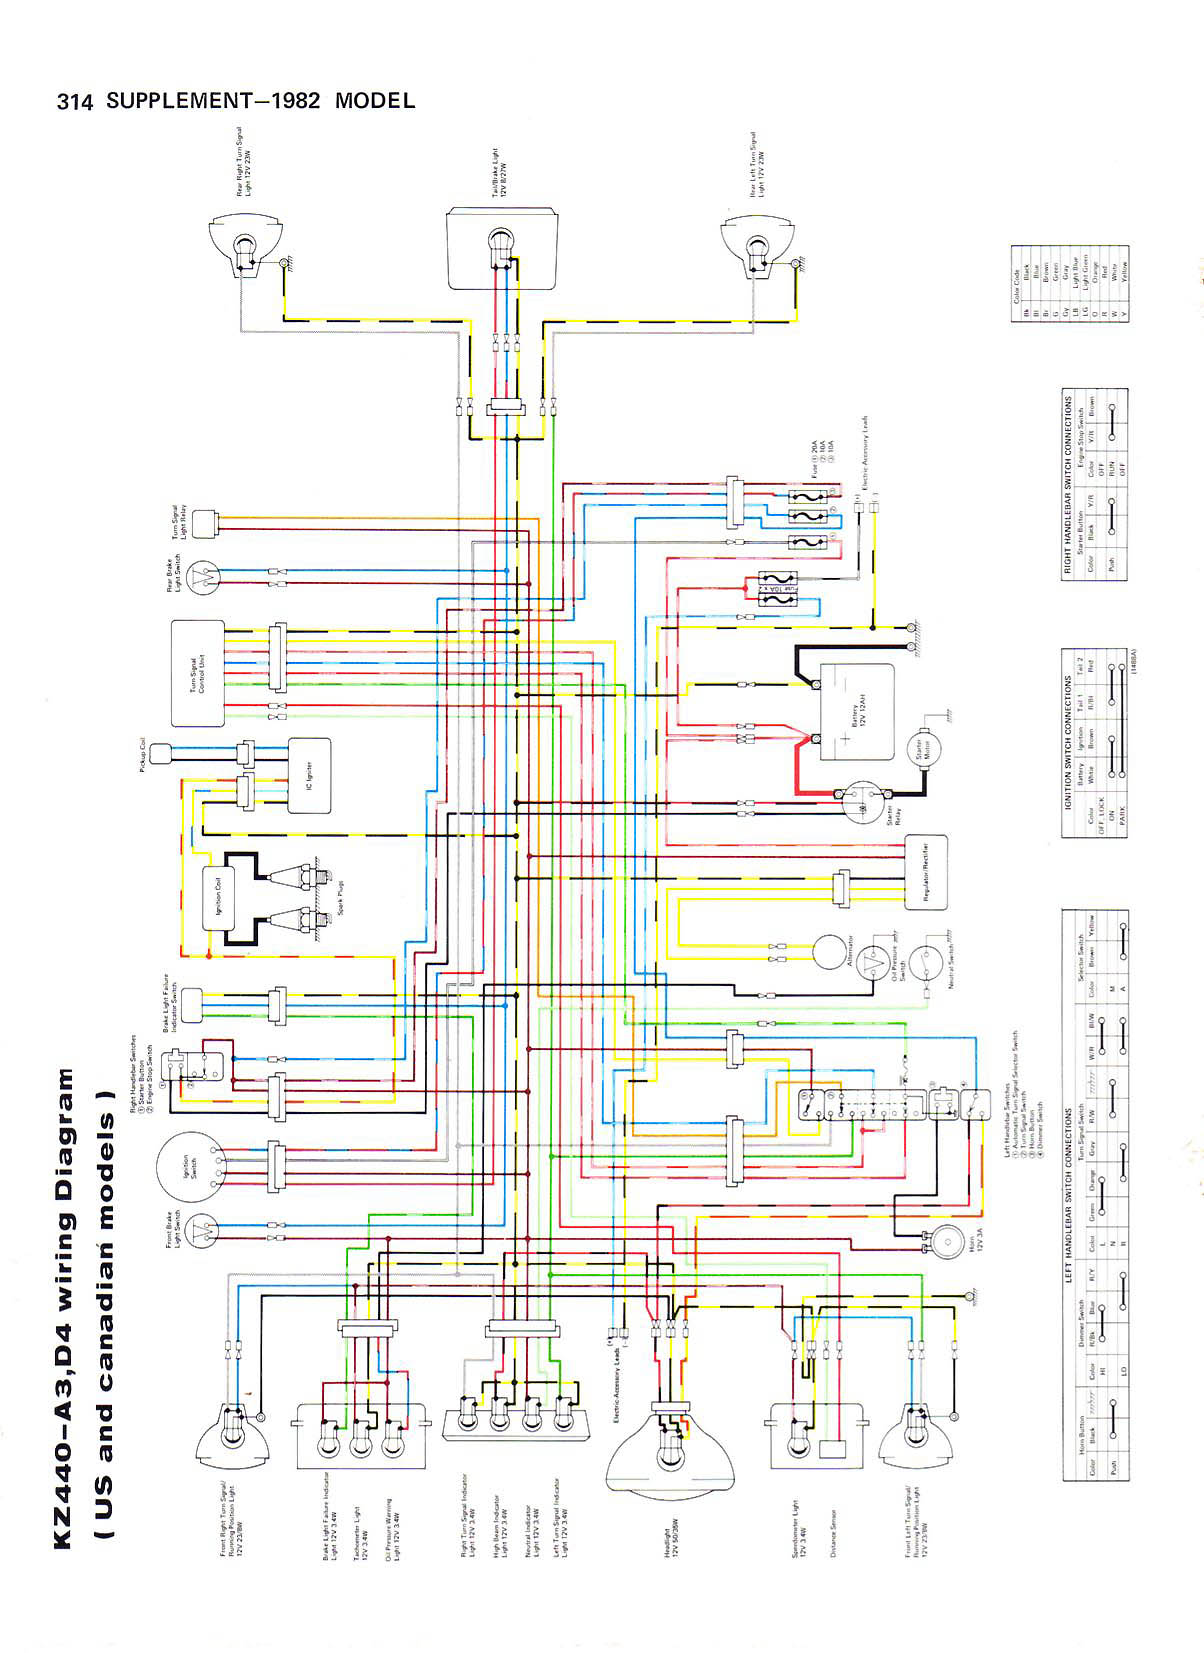 Kawasaki KZ 440 %2780 a %2782 Service Manual_Page_311 index of kz440 wiring diagrams kz440 wiring diagram at creativeand.co